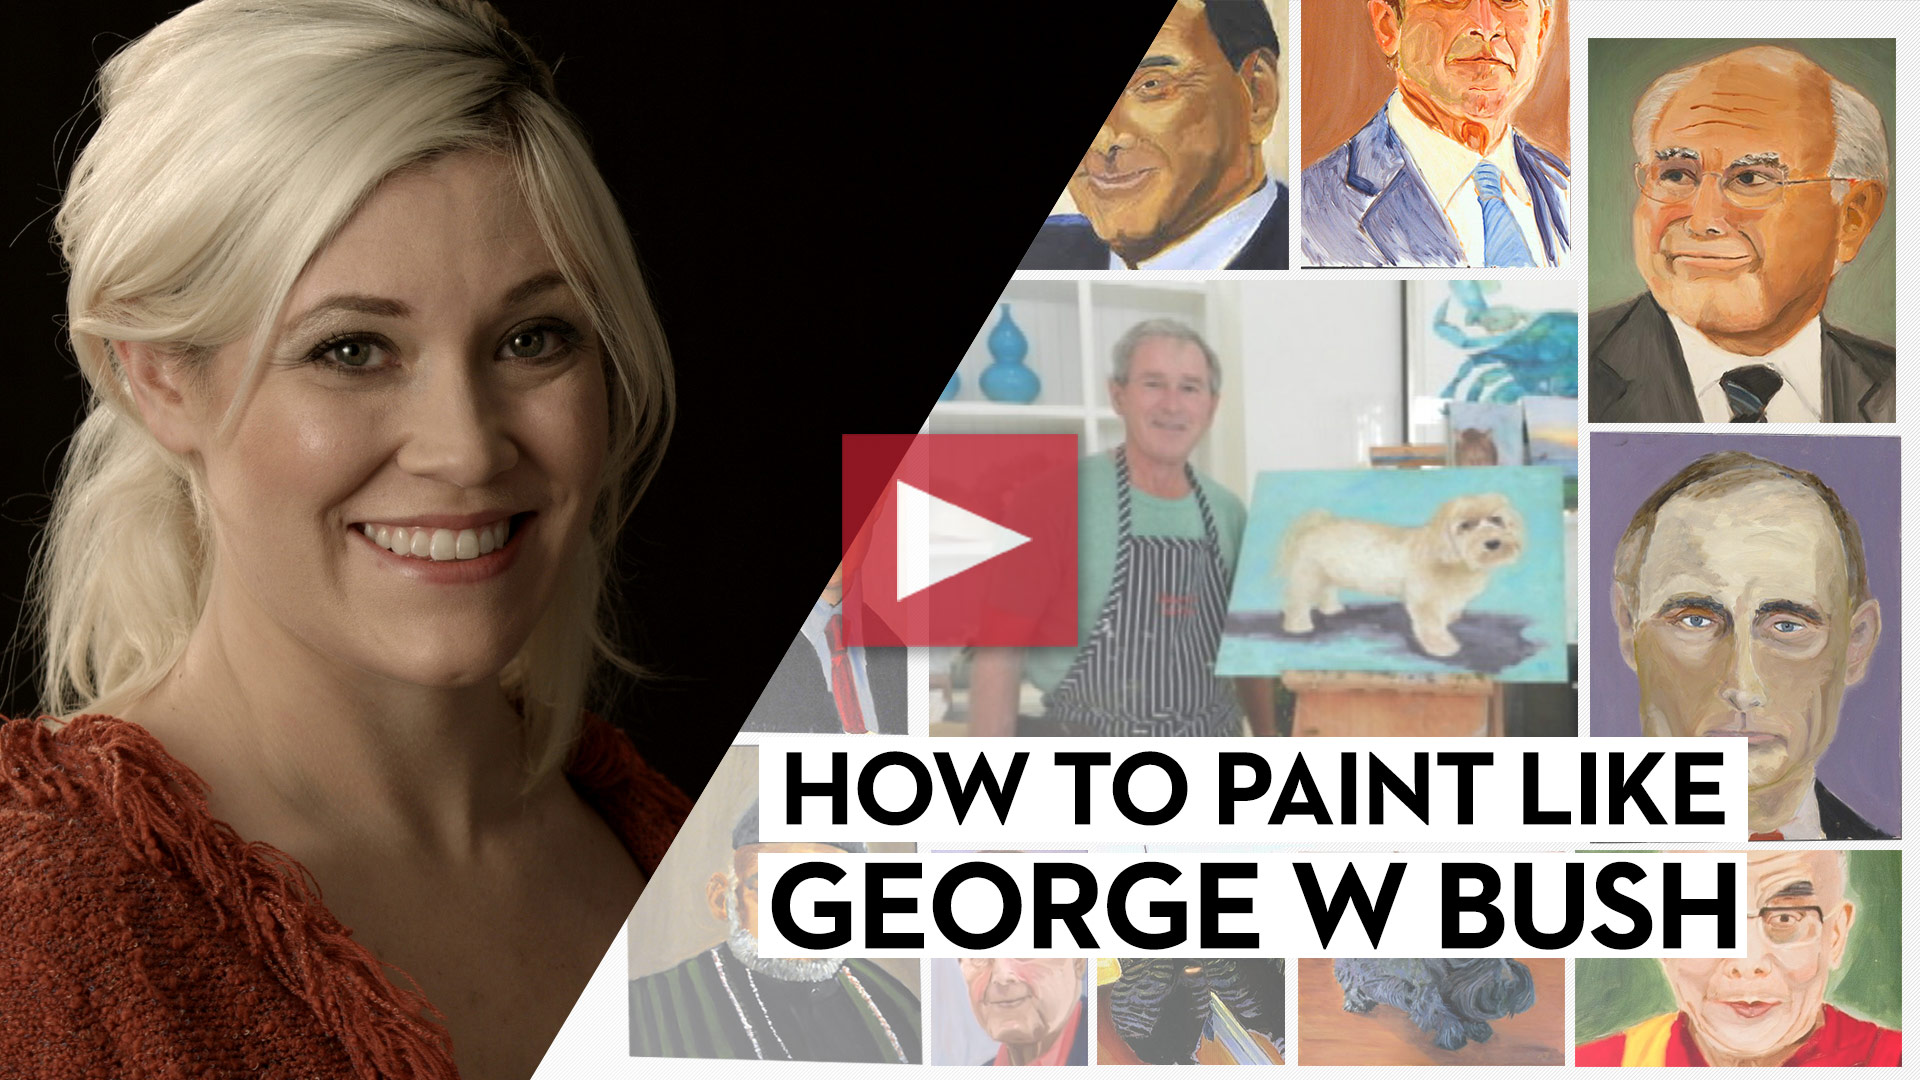 How to Paint Like George W. Bush